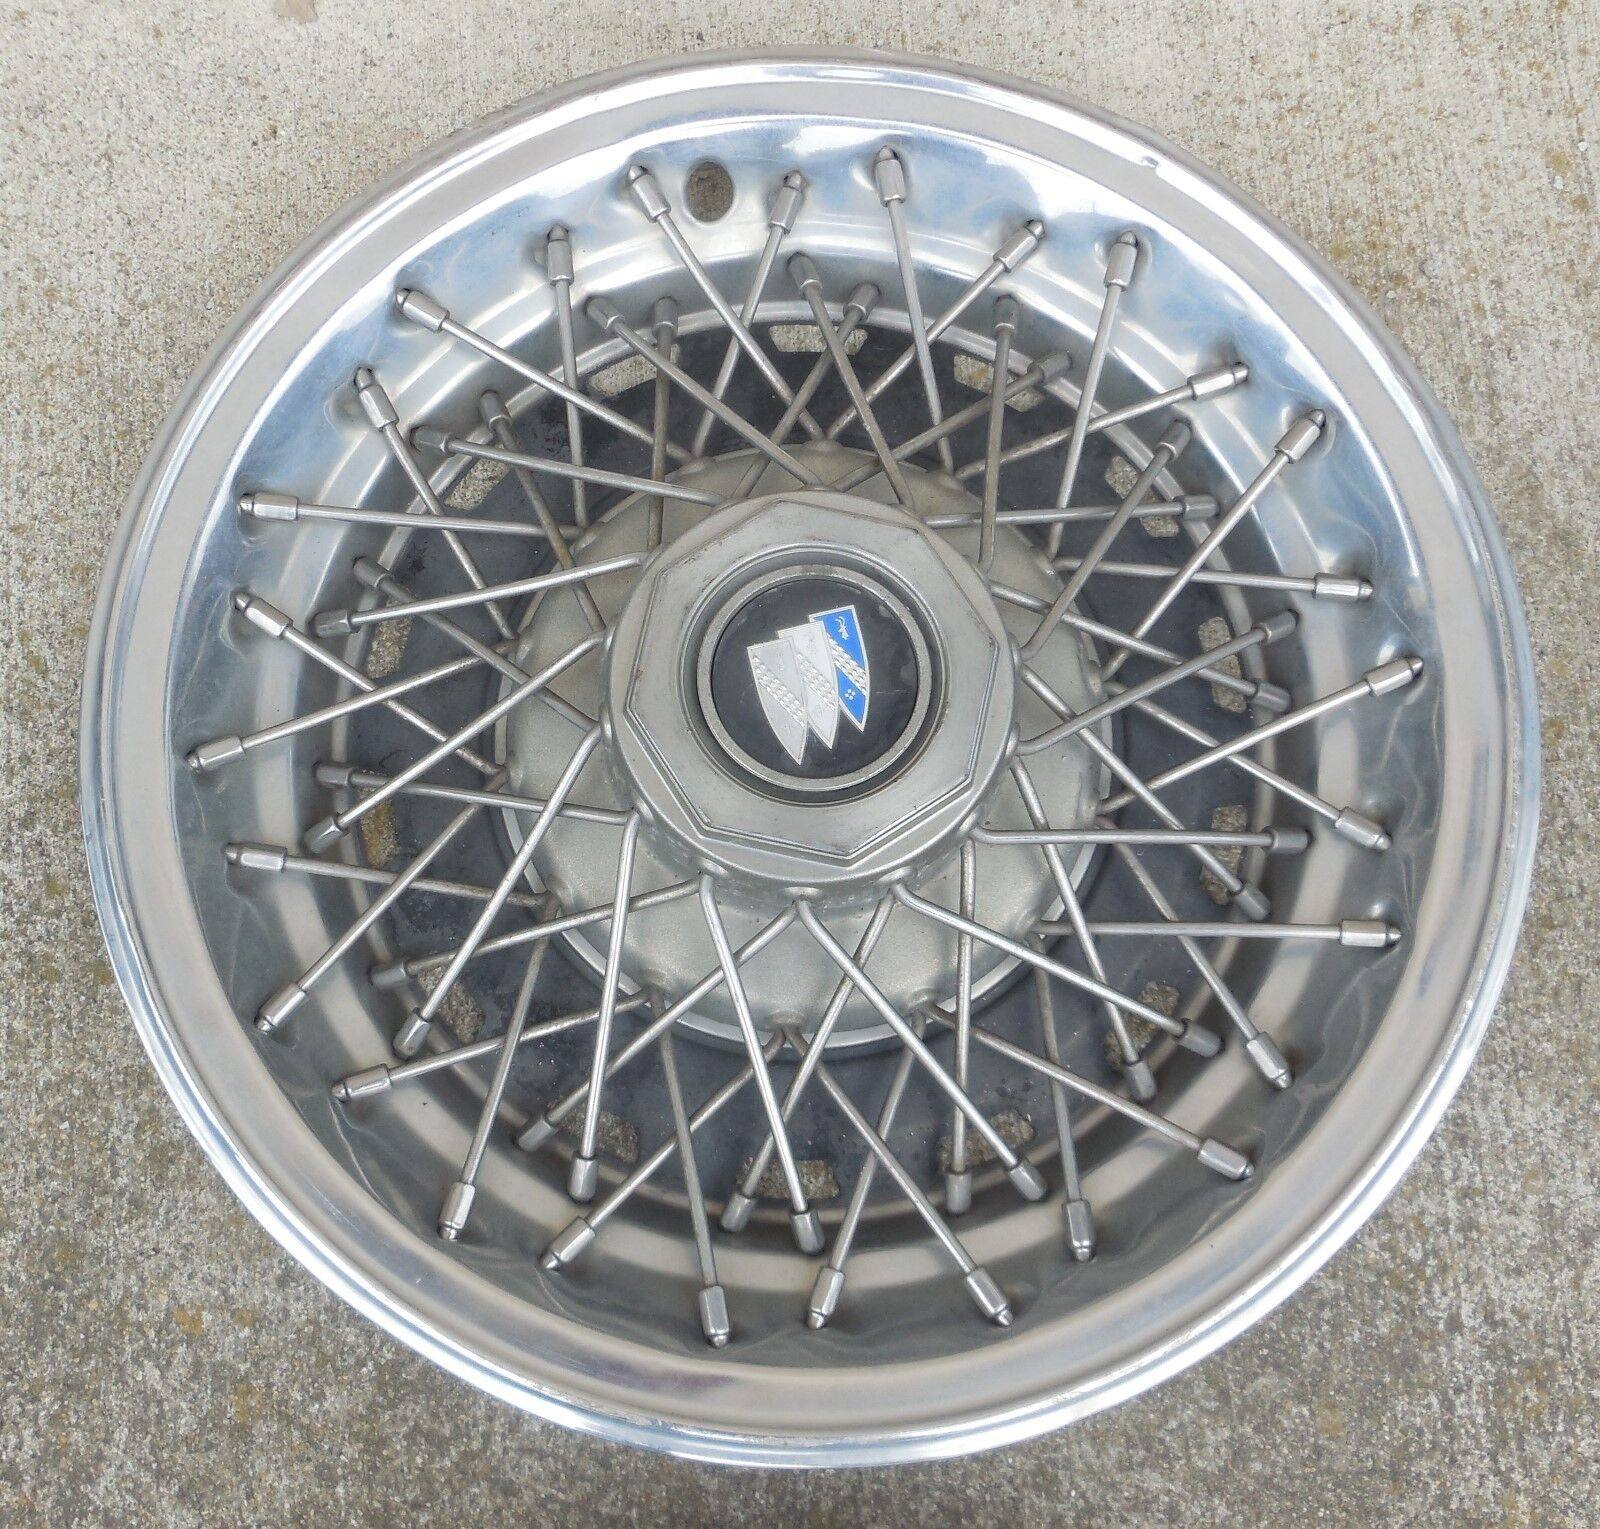 1987 Buick Regal For Sale: Used 1980 Buick Century Wheels And Hubcaps For Sale